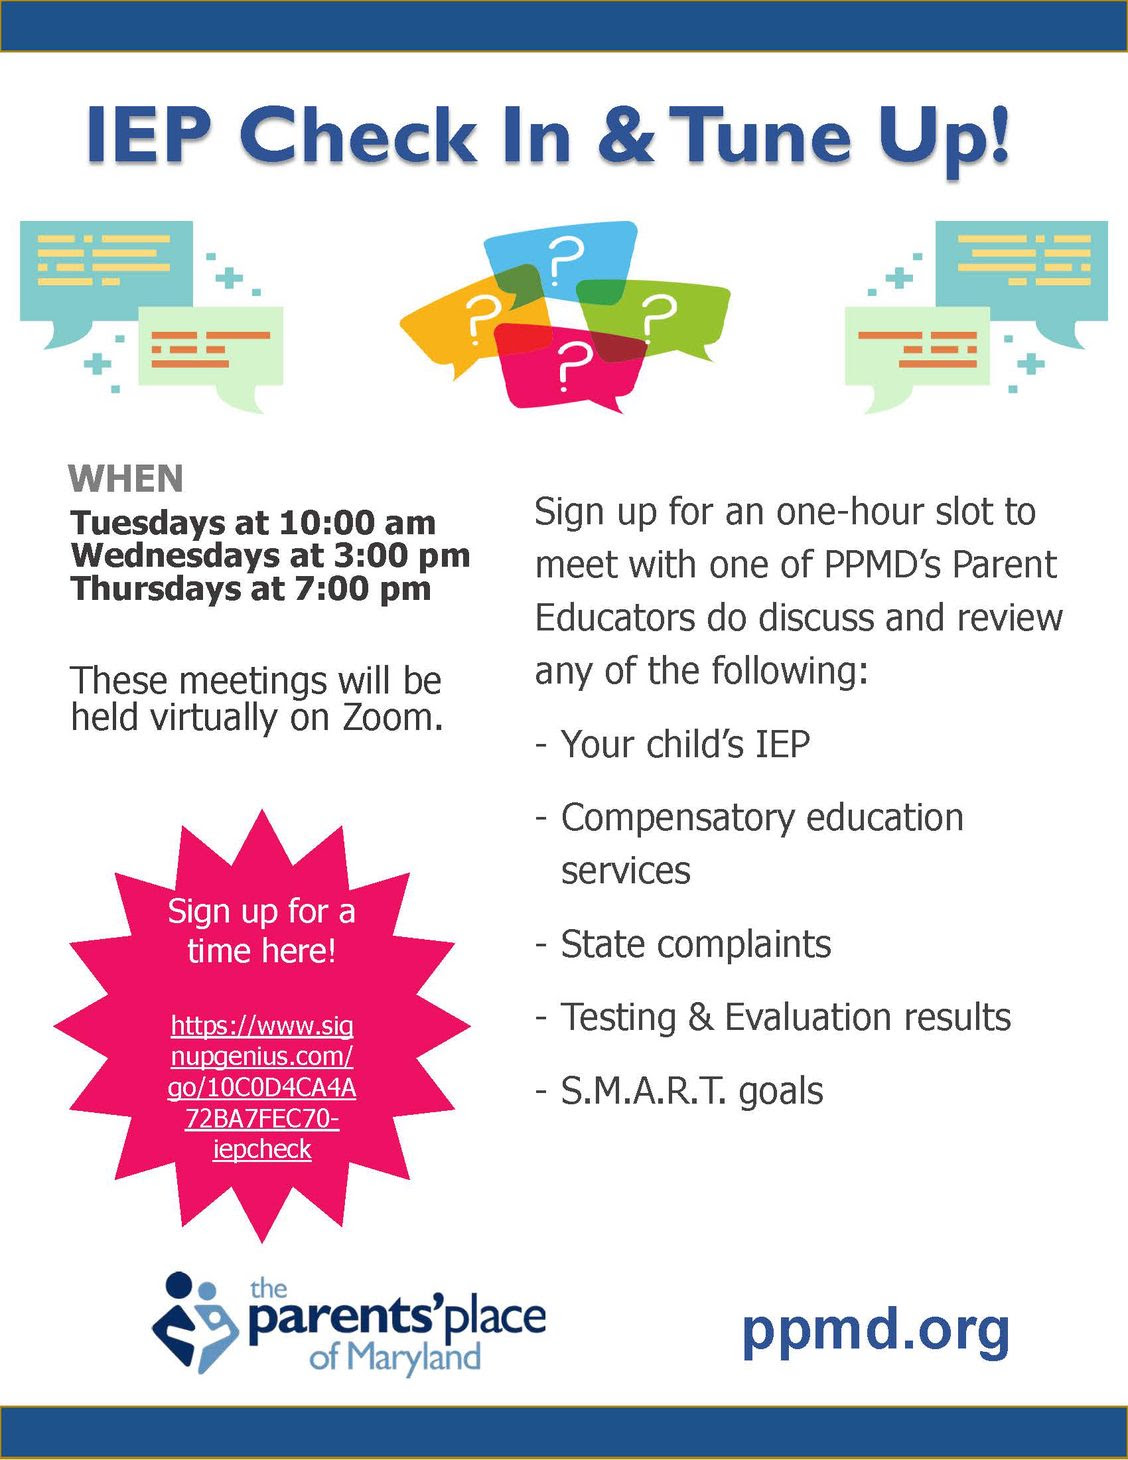 IEP Check in and Tune Up! When: Tuesdays at 10am, Wednesdays at 3pm, Thursdays at 7pm. These meetings will be held virtually on Zoom. Sign up for an one-hour slot to meet with one of PPMD's parent educators to discuss and review any of the following: your child's IEP, compensatory education services, state complaints, testing and evaluation results, S.M.A.R.T. goals